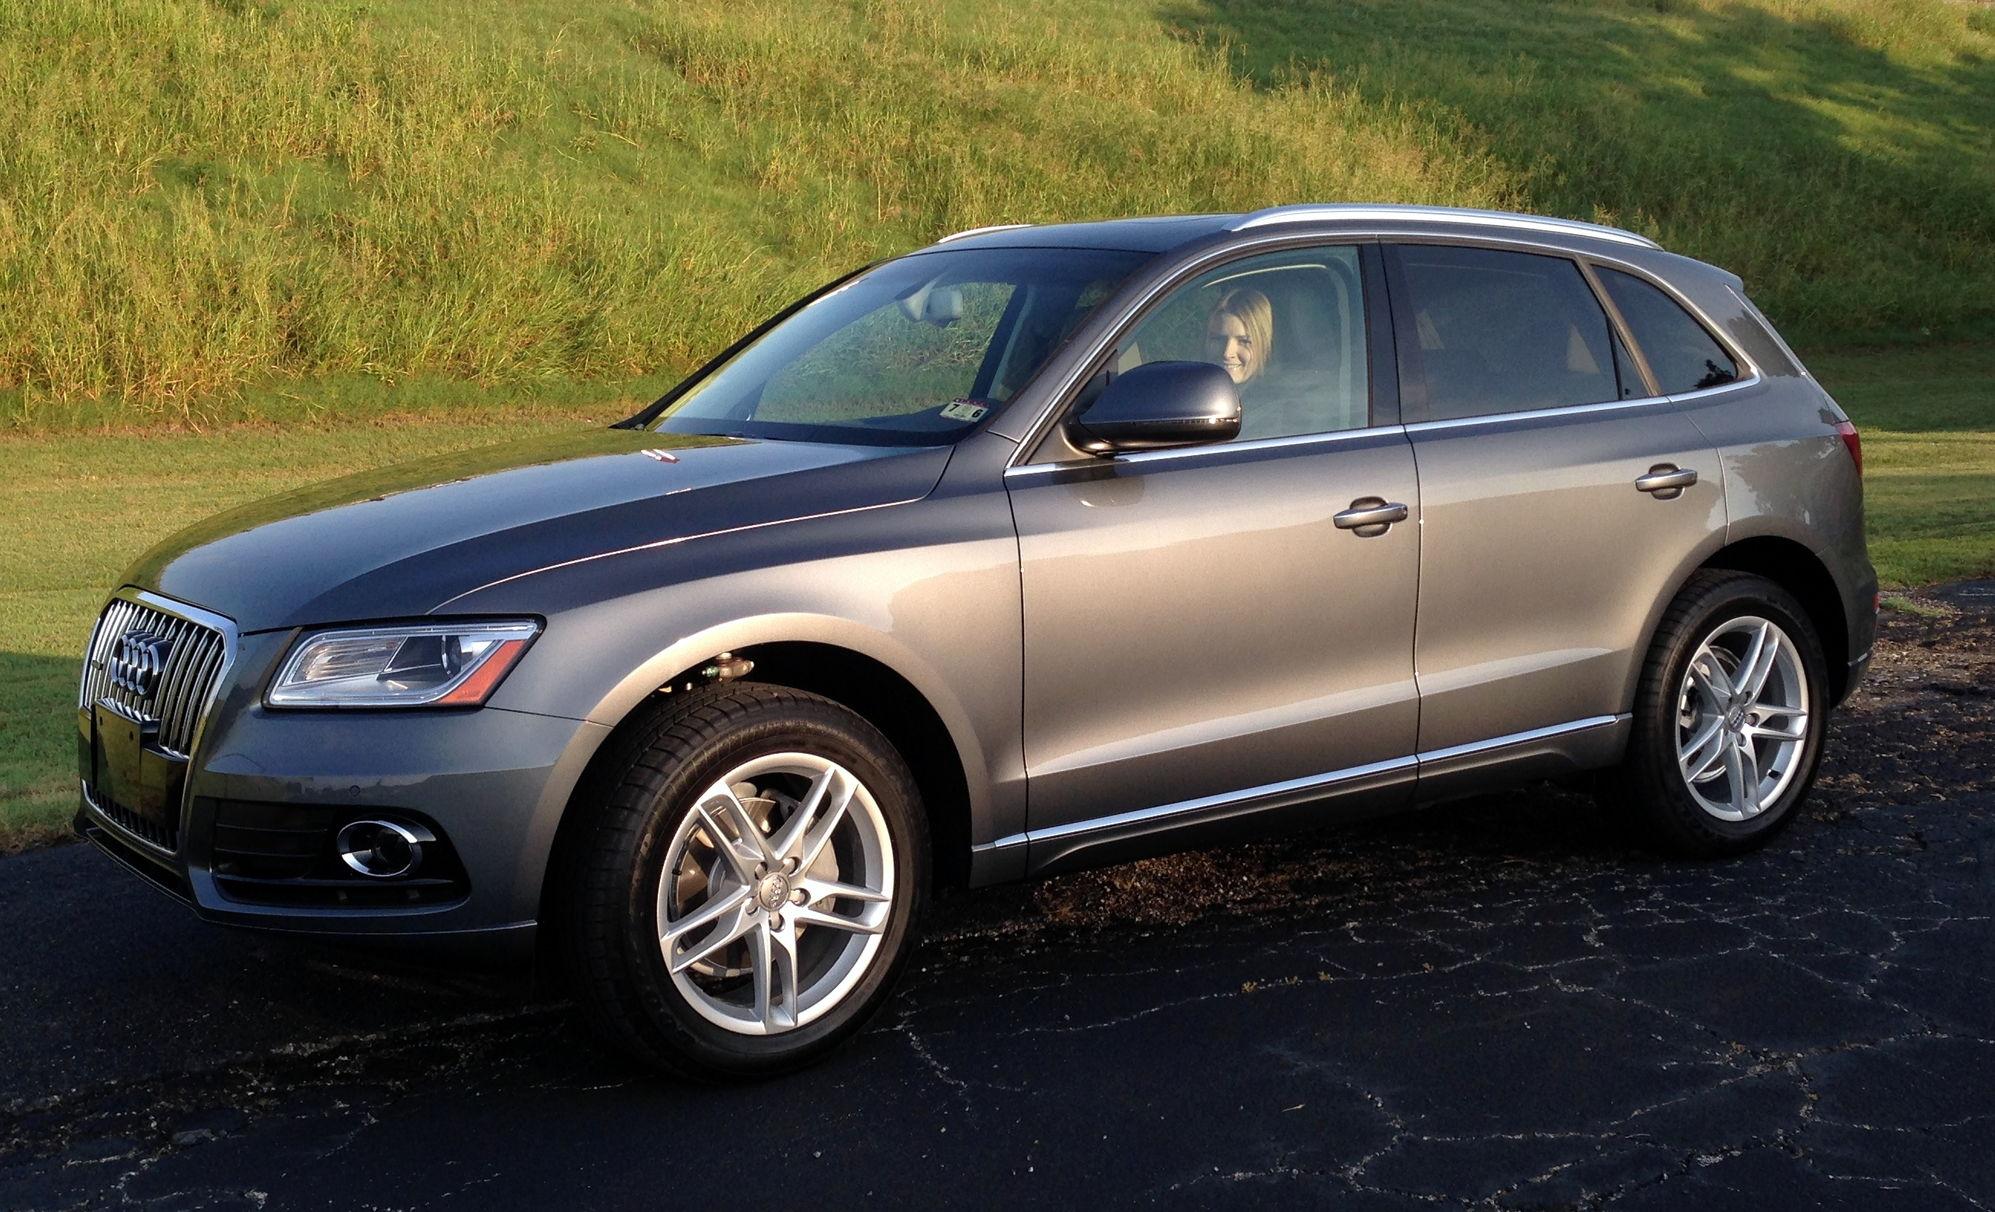 official audi world q5 sq5 photo thread page 26 audiworld forums. Black Bedroom Furniture Sets. Home Design Ideas